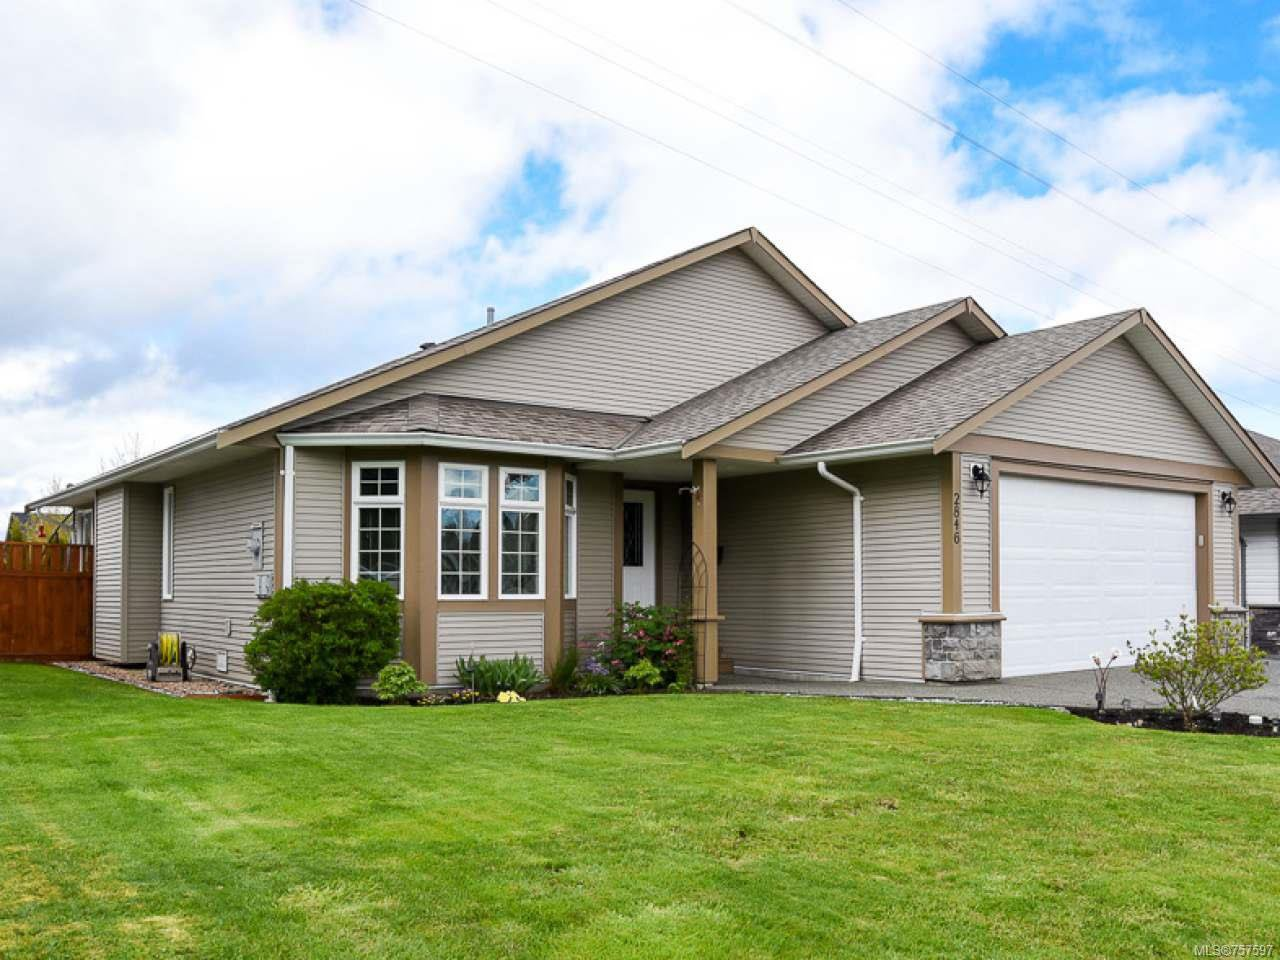 Main Photo: 2846 BRYDEN PLACE in COURTENAY: CV Courtenay East House for sale (Comox Valley)  : MLS®# 757597